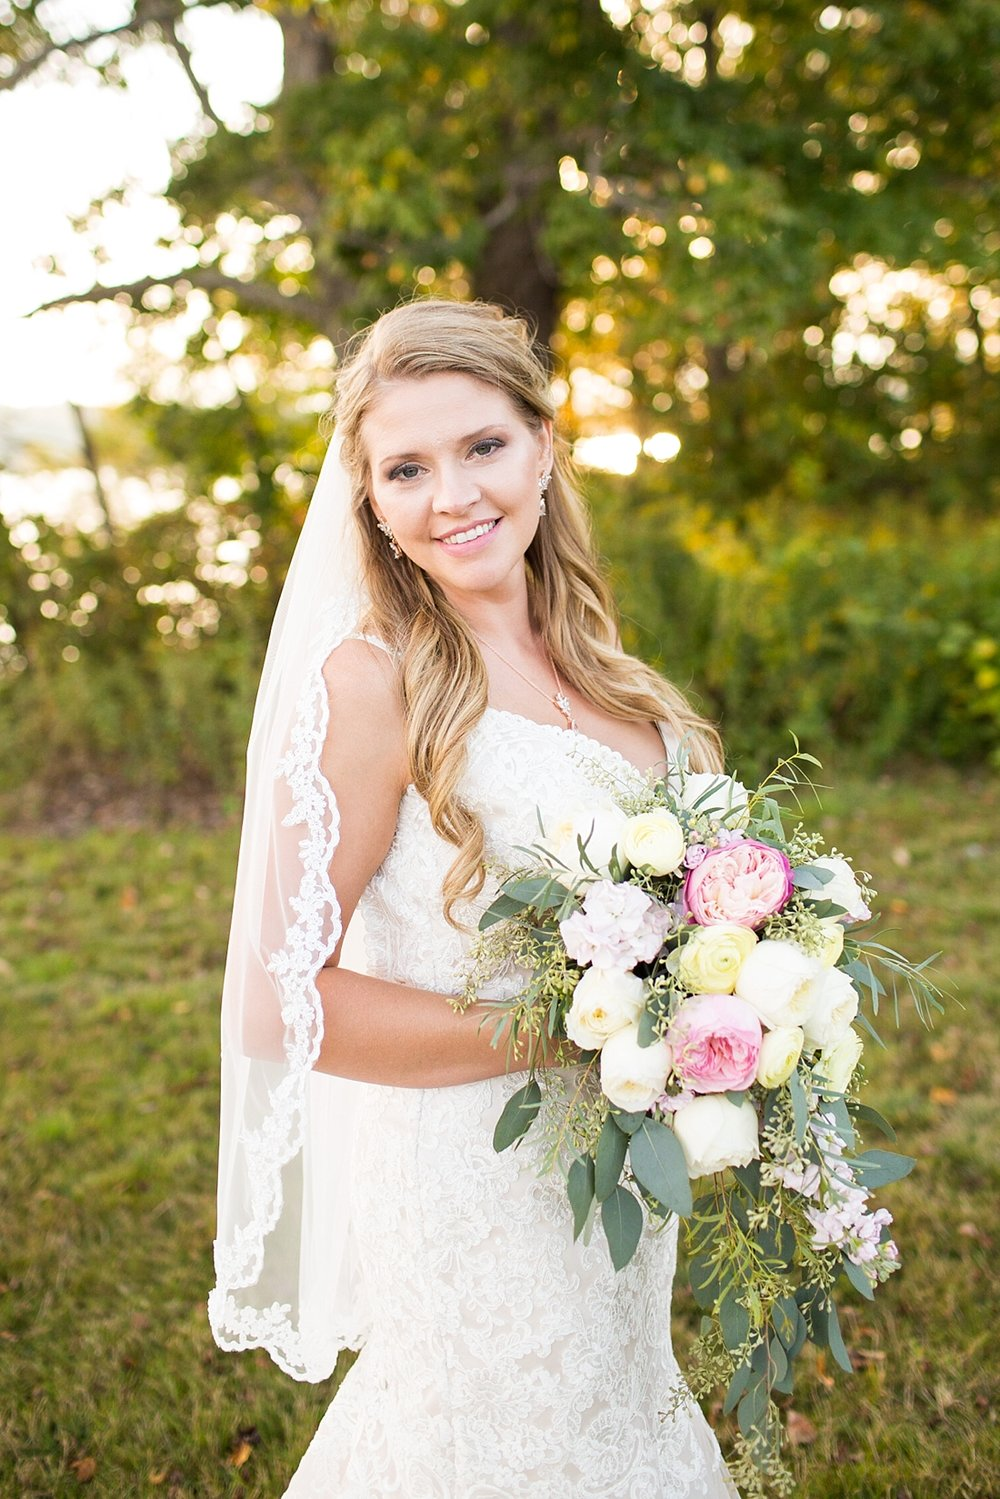 Marryland Weddings Deep Creek Lake Lakefront Wedding Jessica Fike Photography_1144.jpg